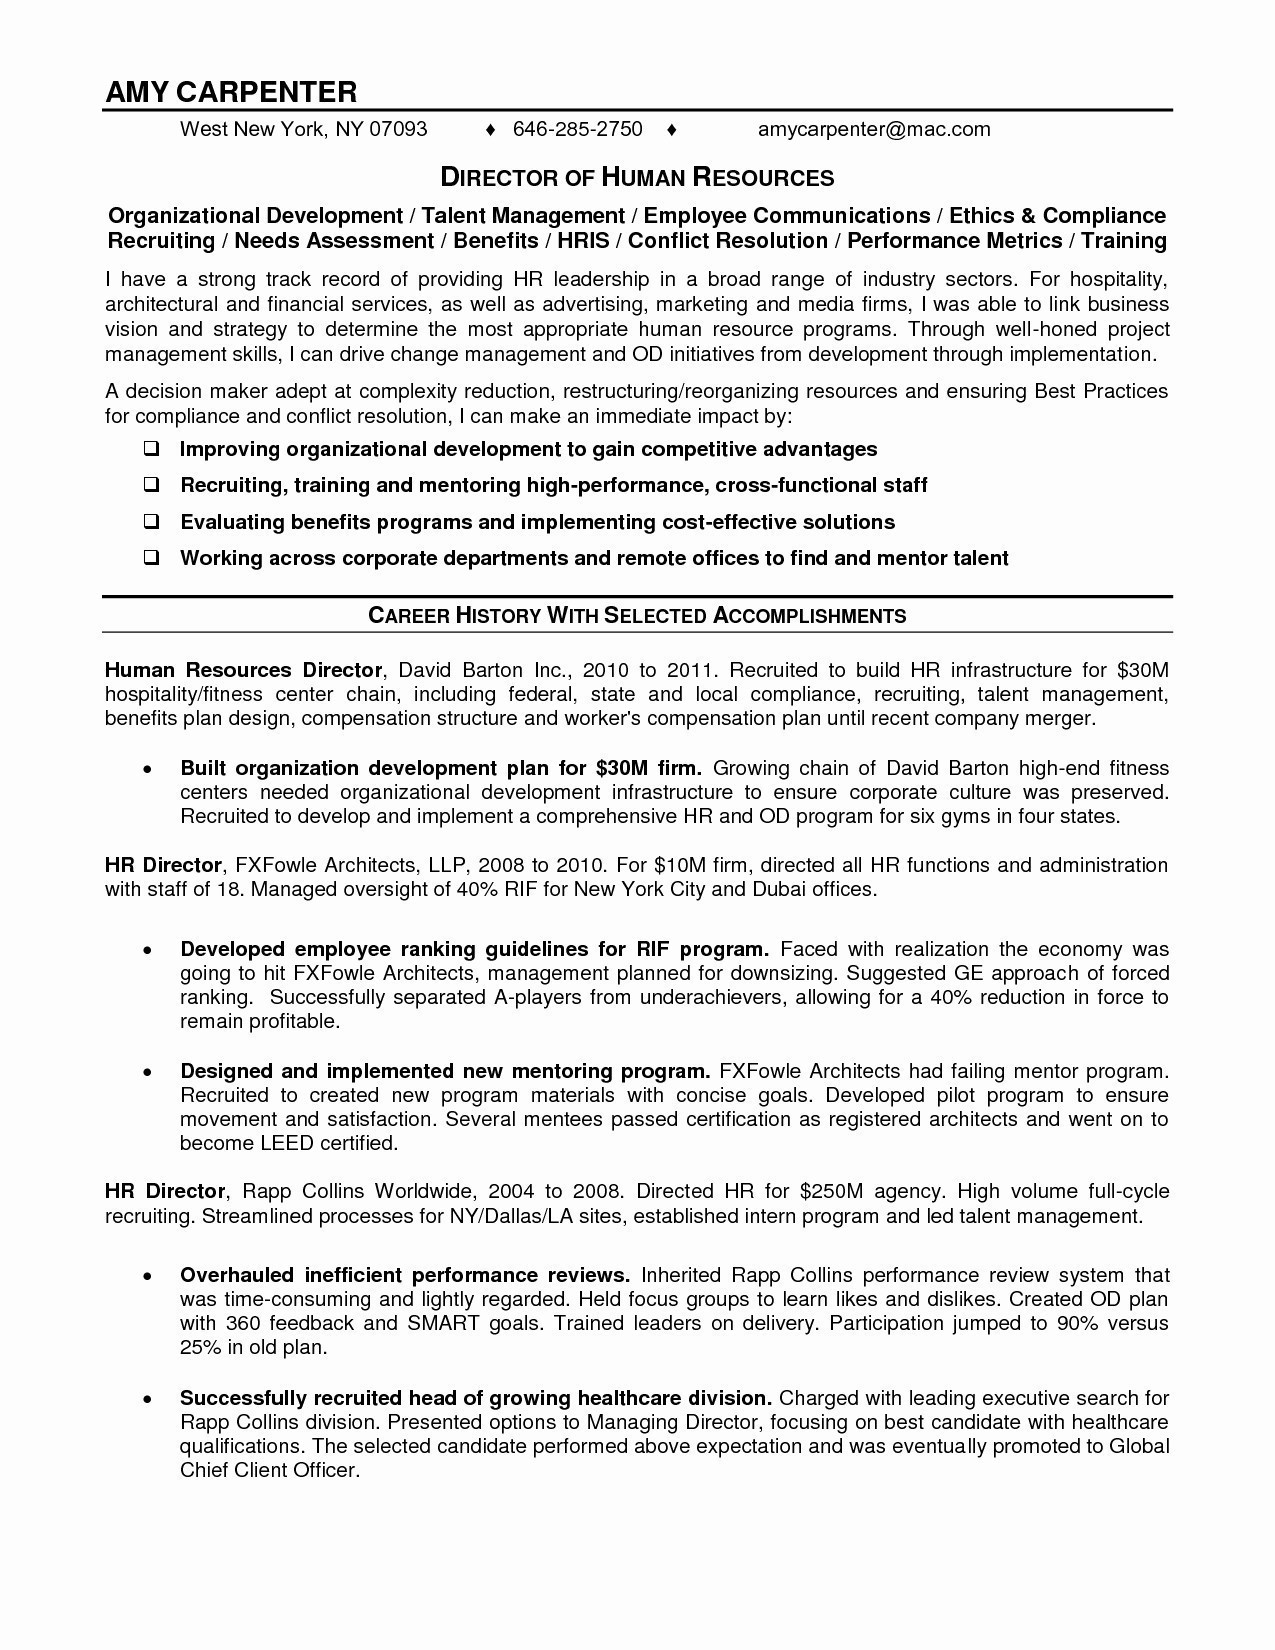 Resume for Graduate School Template - Resume for Graduate School Template New Sample Resume for Graduate